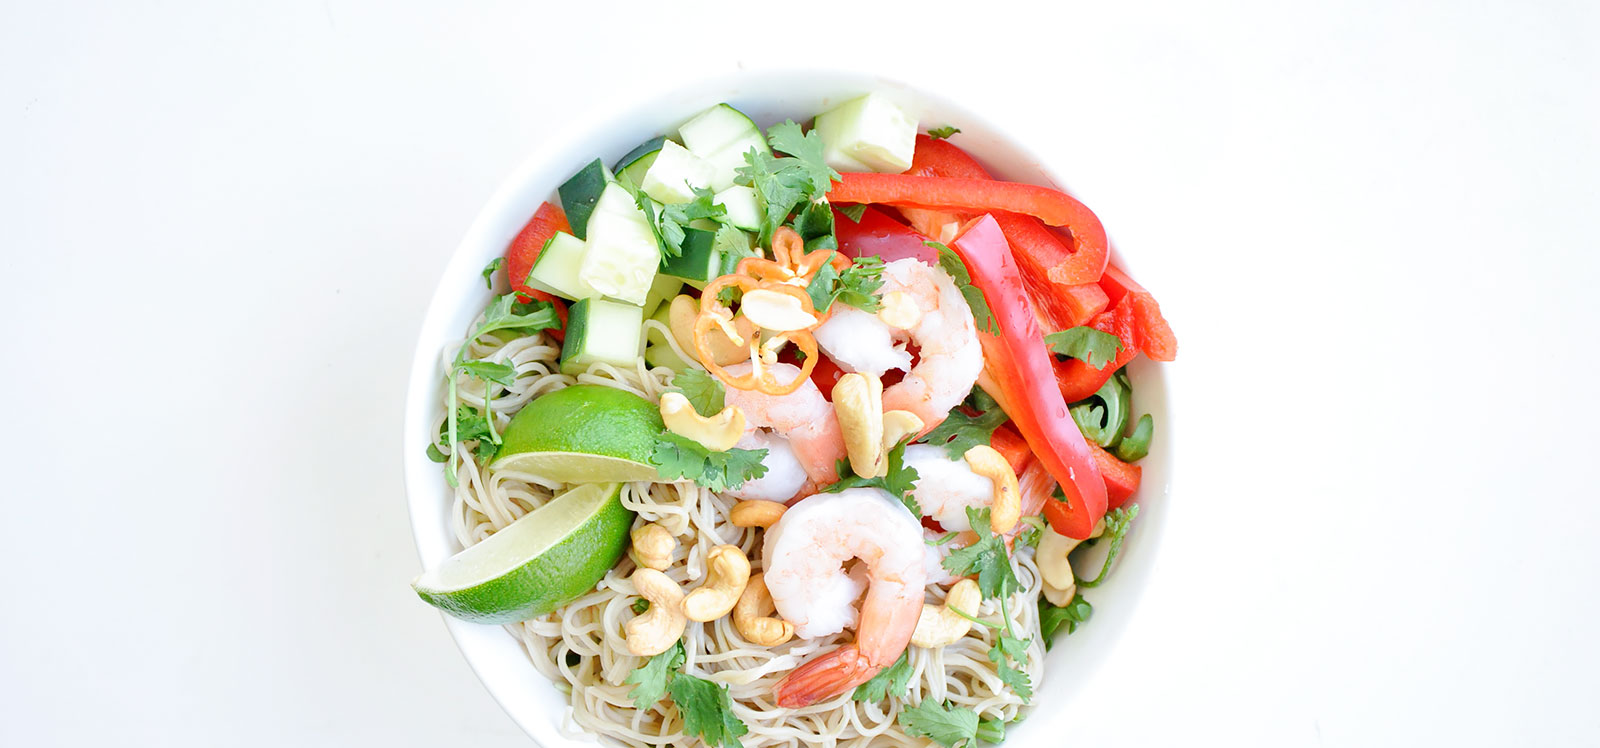 SHRIMP NOODLE BOWLS WITH SPICY PEANUT DRESSING   Shrimp noodle bowls with spicy peanut dressing: a gluten-free summer favorite that's easy to meal prep. Made with healthy brown rice noodles or zucchini noodles and topped with peanuts and cilantro.   LOVELEAF CO. #mealprep #shrimp #bowls #salad #saladrecipes #summer #noodles #brownrice #peanutsauce #easyrecipe #mealprepping #saladrecipe #bowl